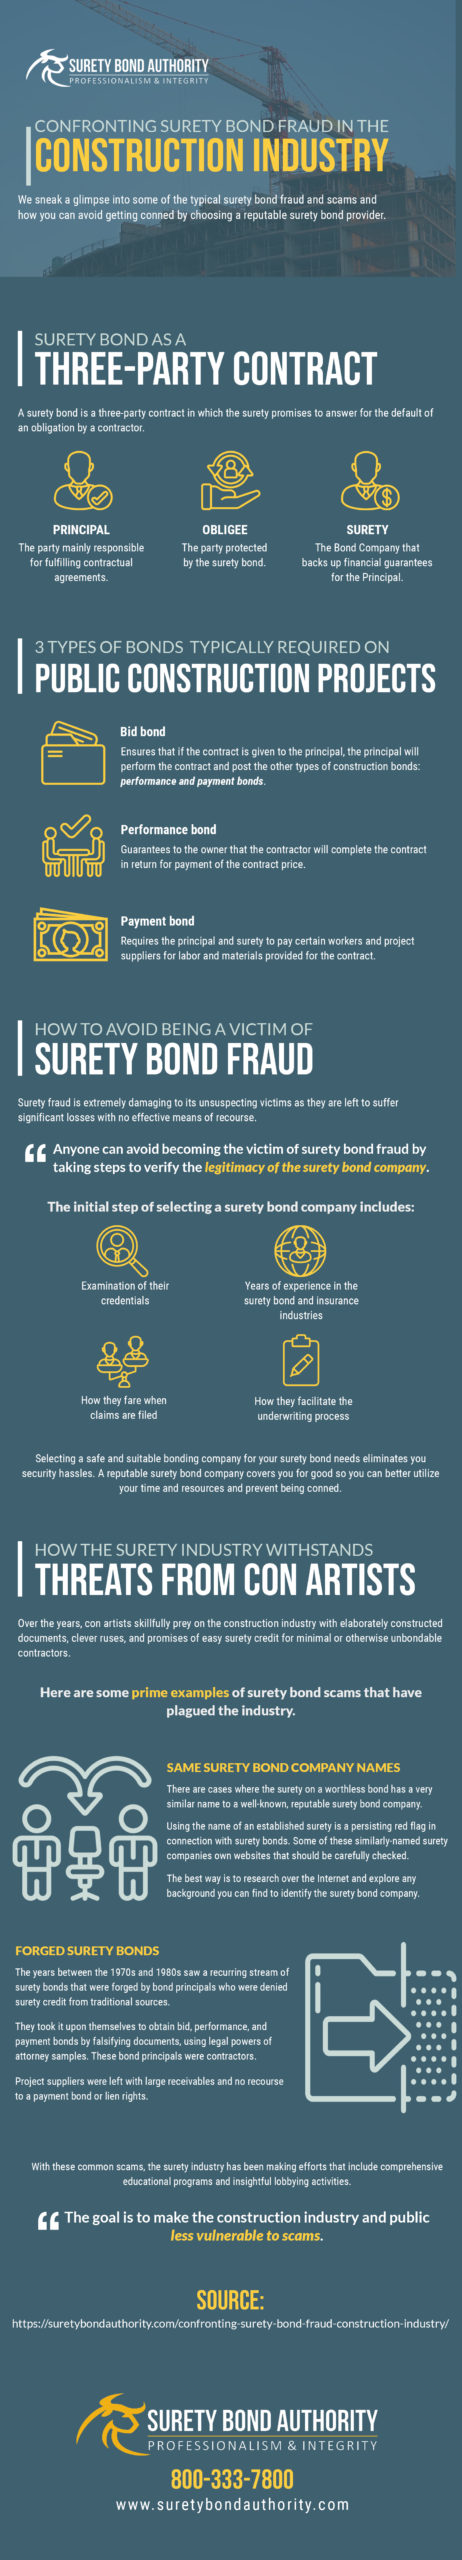 Confronting Surety Bond Fraud Infographic